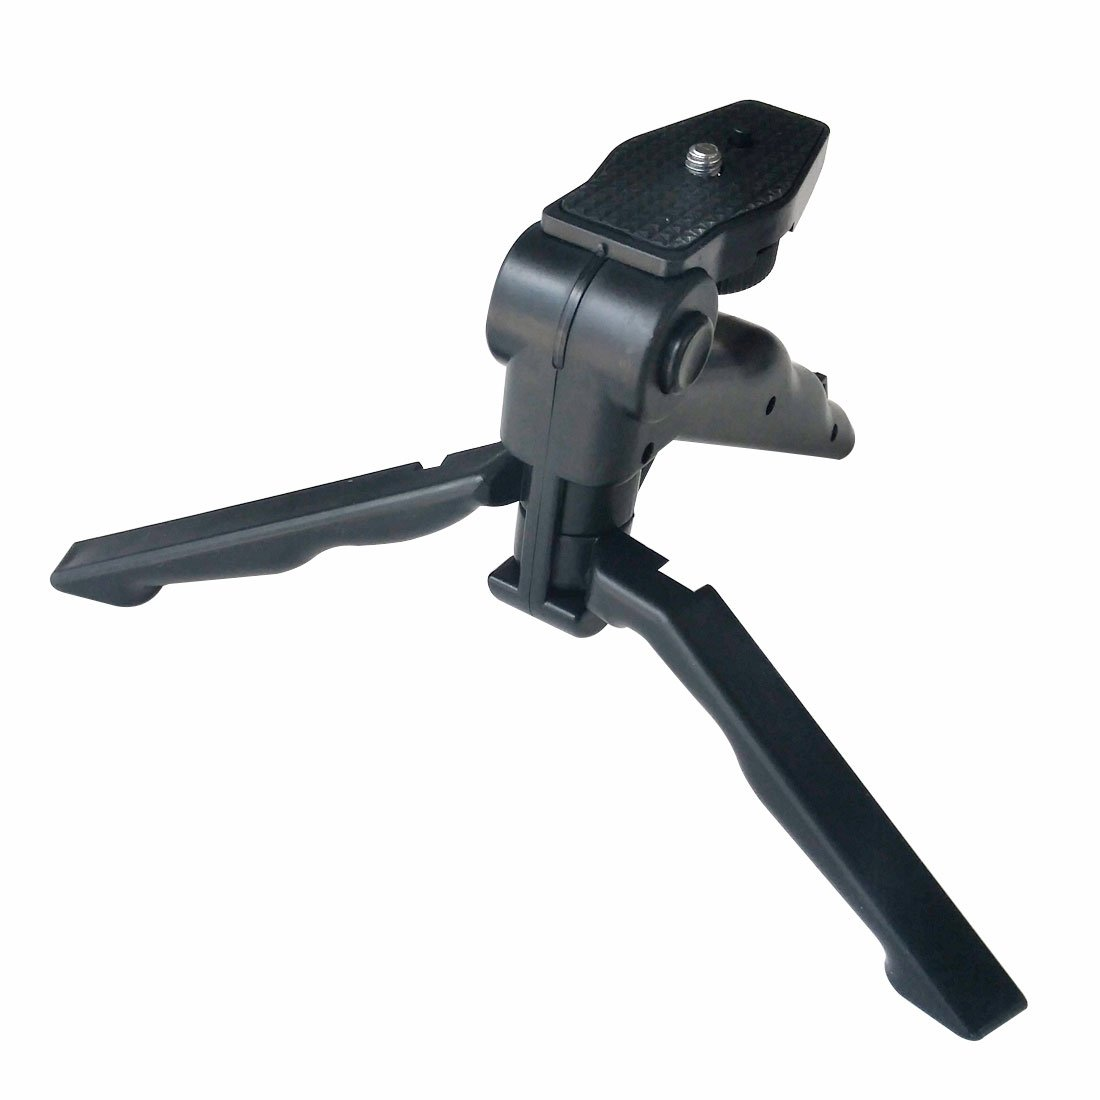 Mini Tripod Tabletop Stand w/ Soft Pistol Grip for DSLR, Smartphones, Audio Recorder and Video Cameras